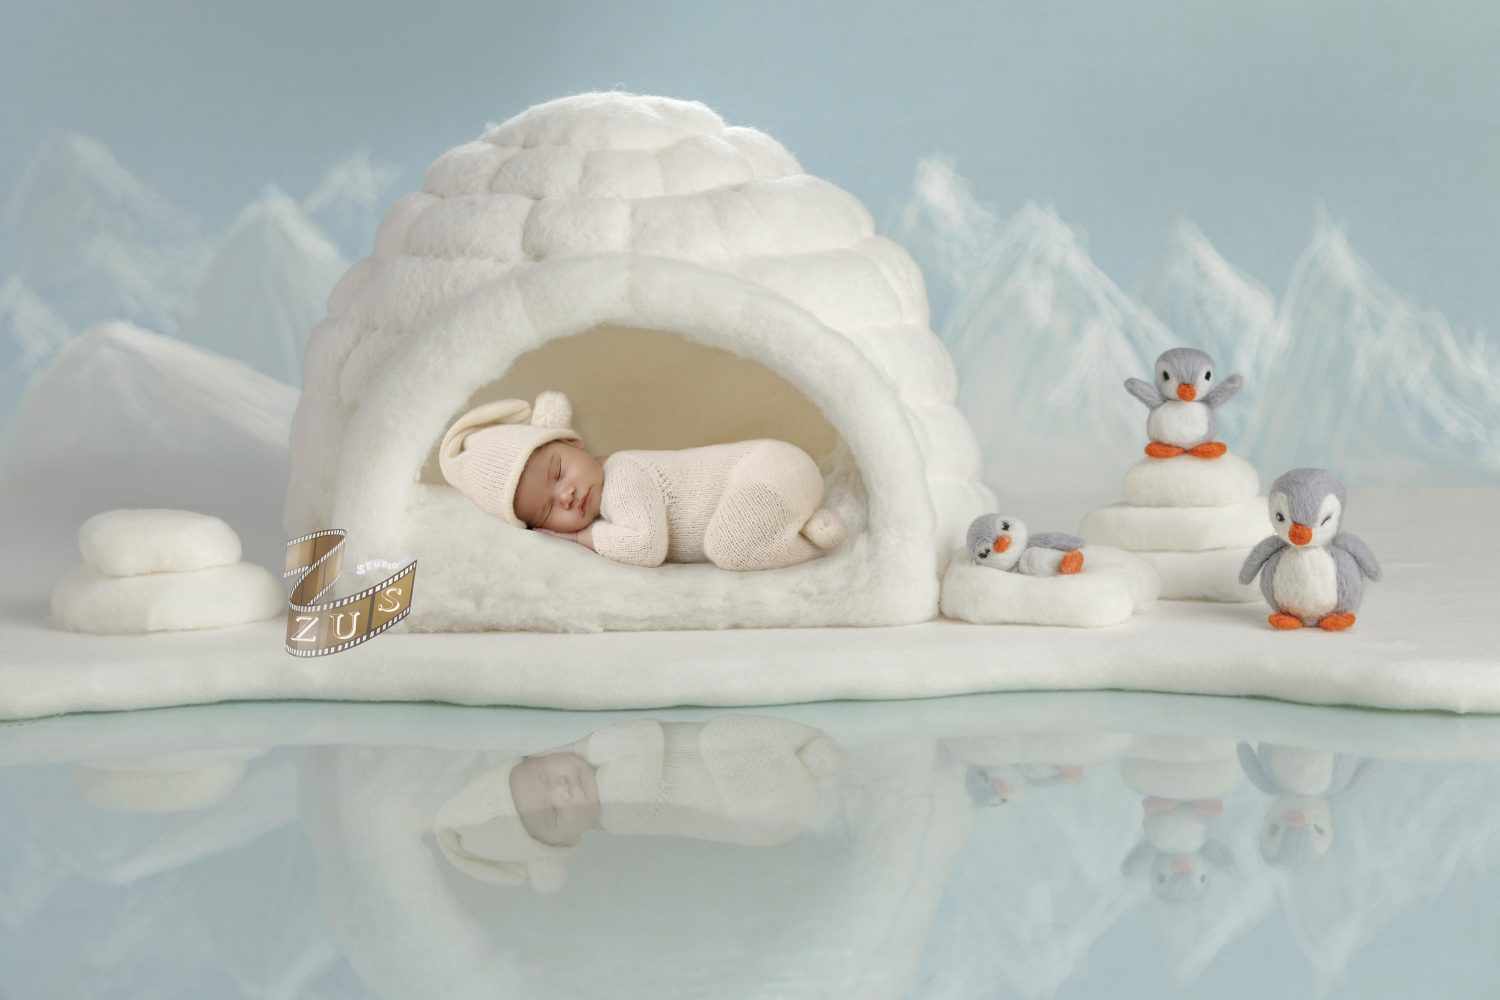 igloo-sell-e1571258133938